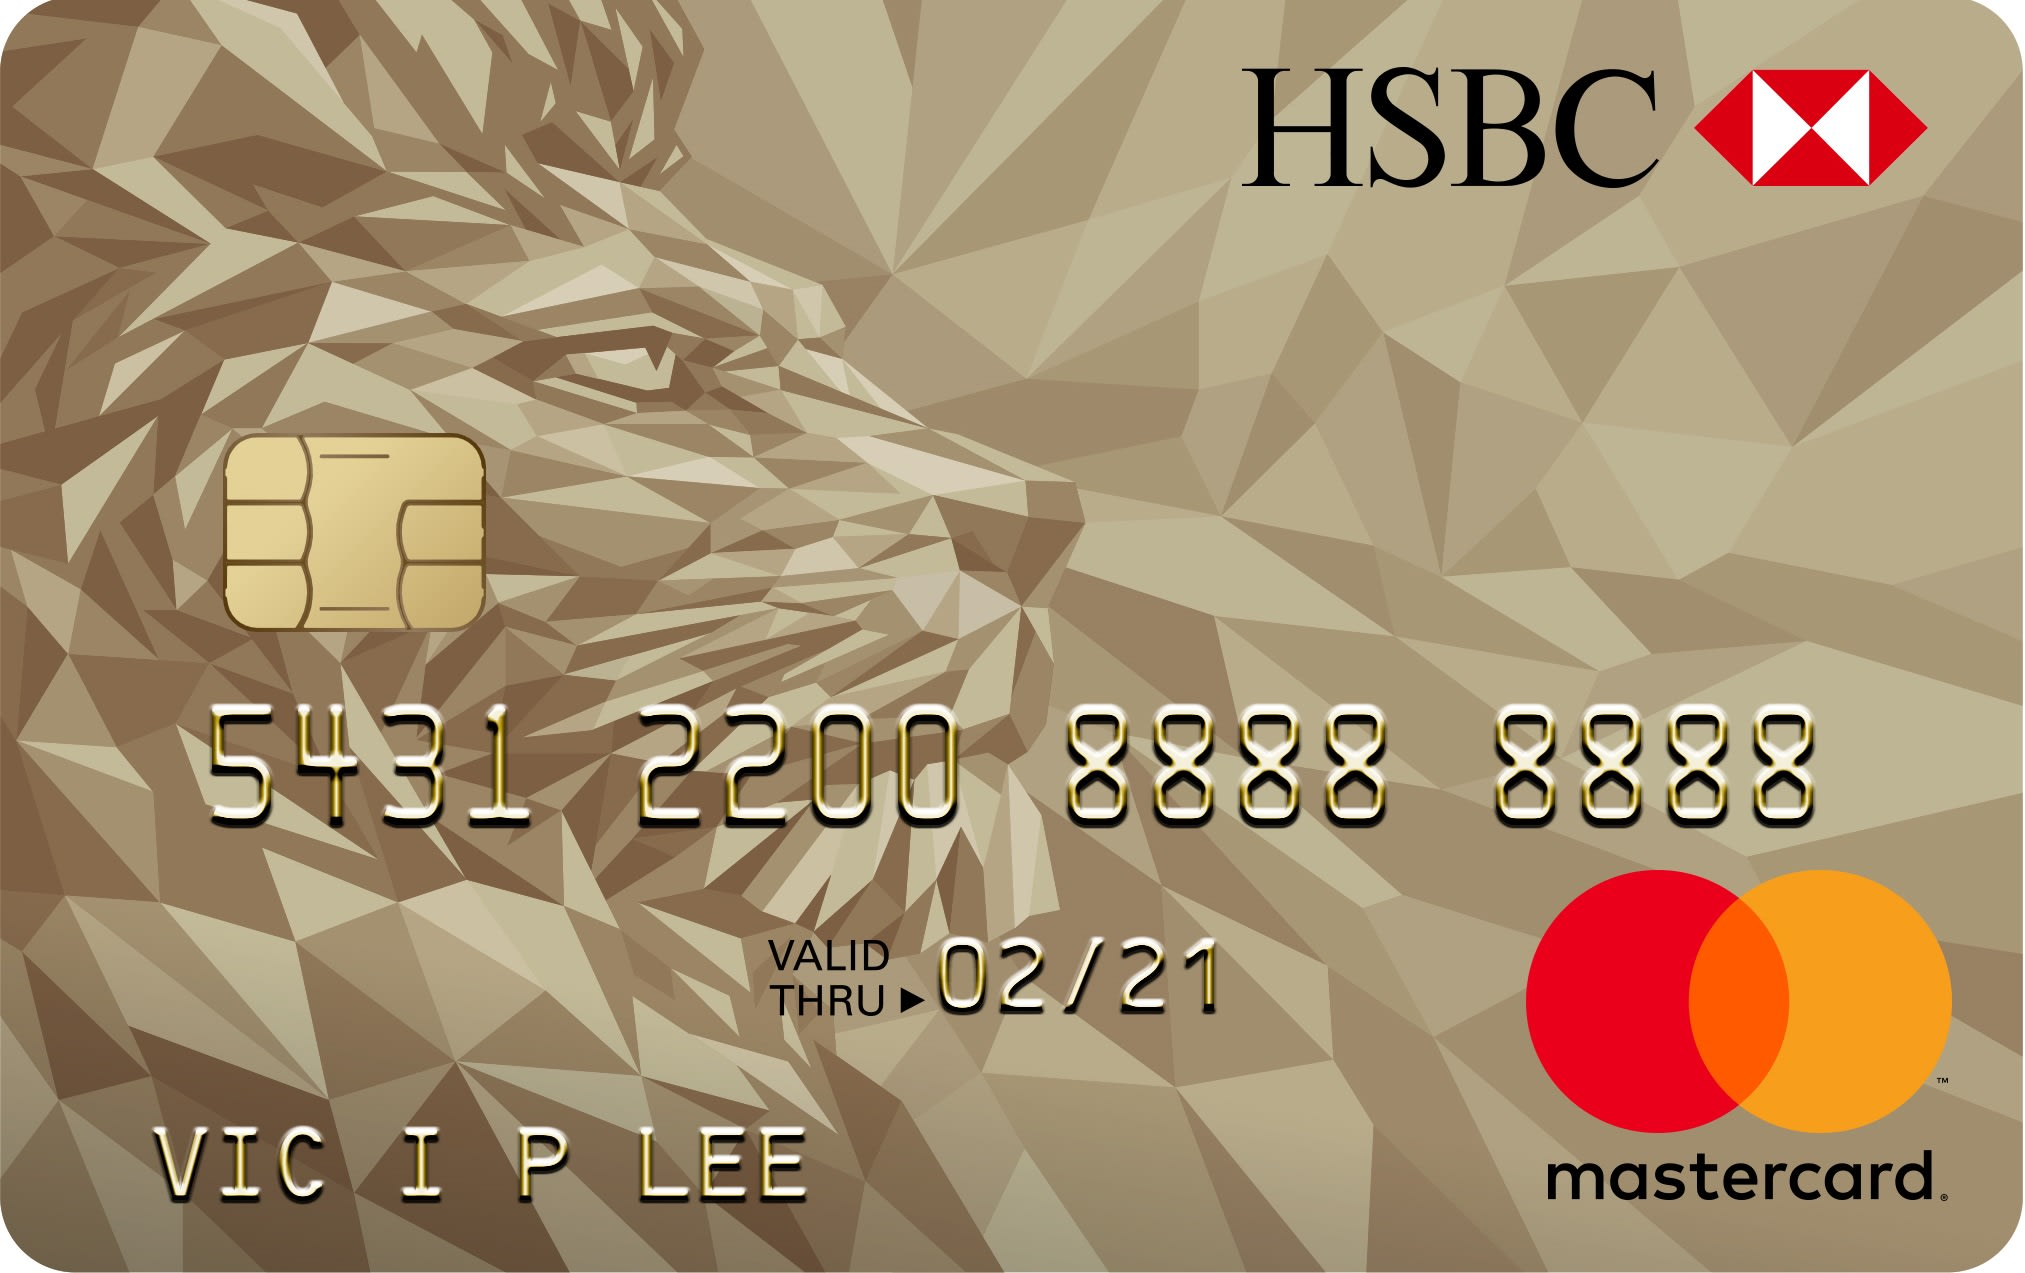 Credit cards: HSBC Gold mastercard